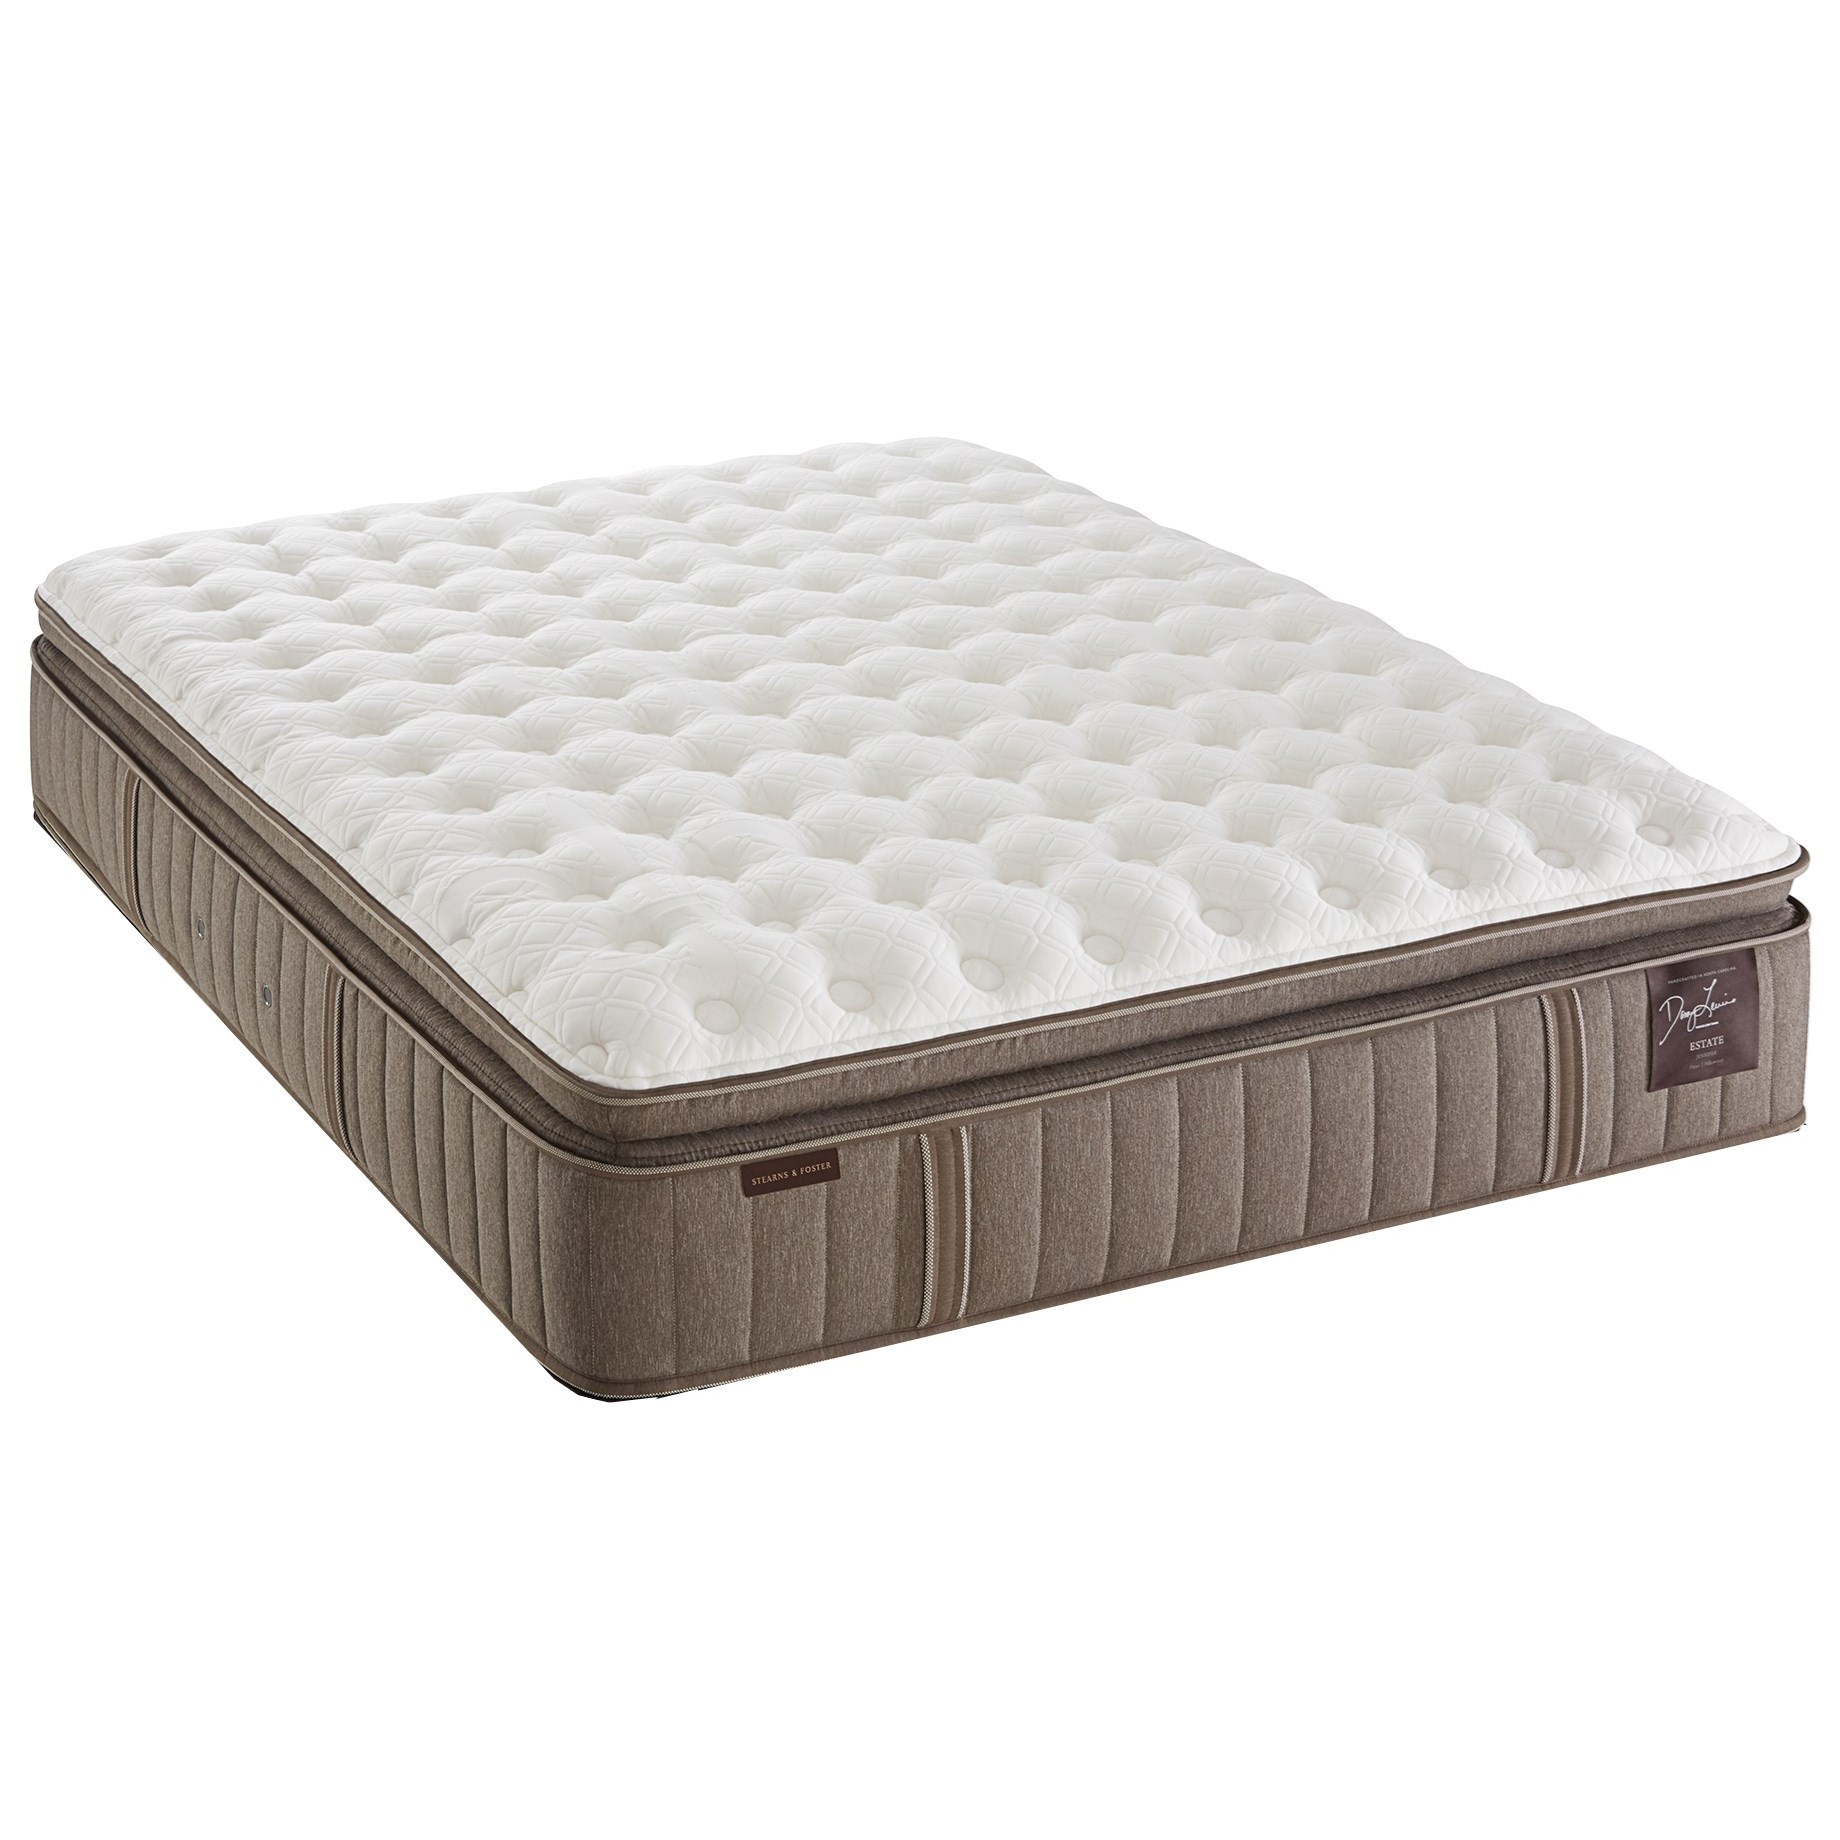 Stearns & Foster Oak Terrace Full Cushion Firm Euro PT Mattress - Item Number: CushFirmEPT-F